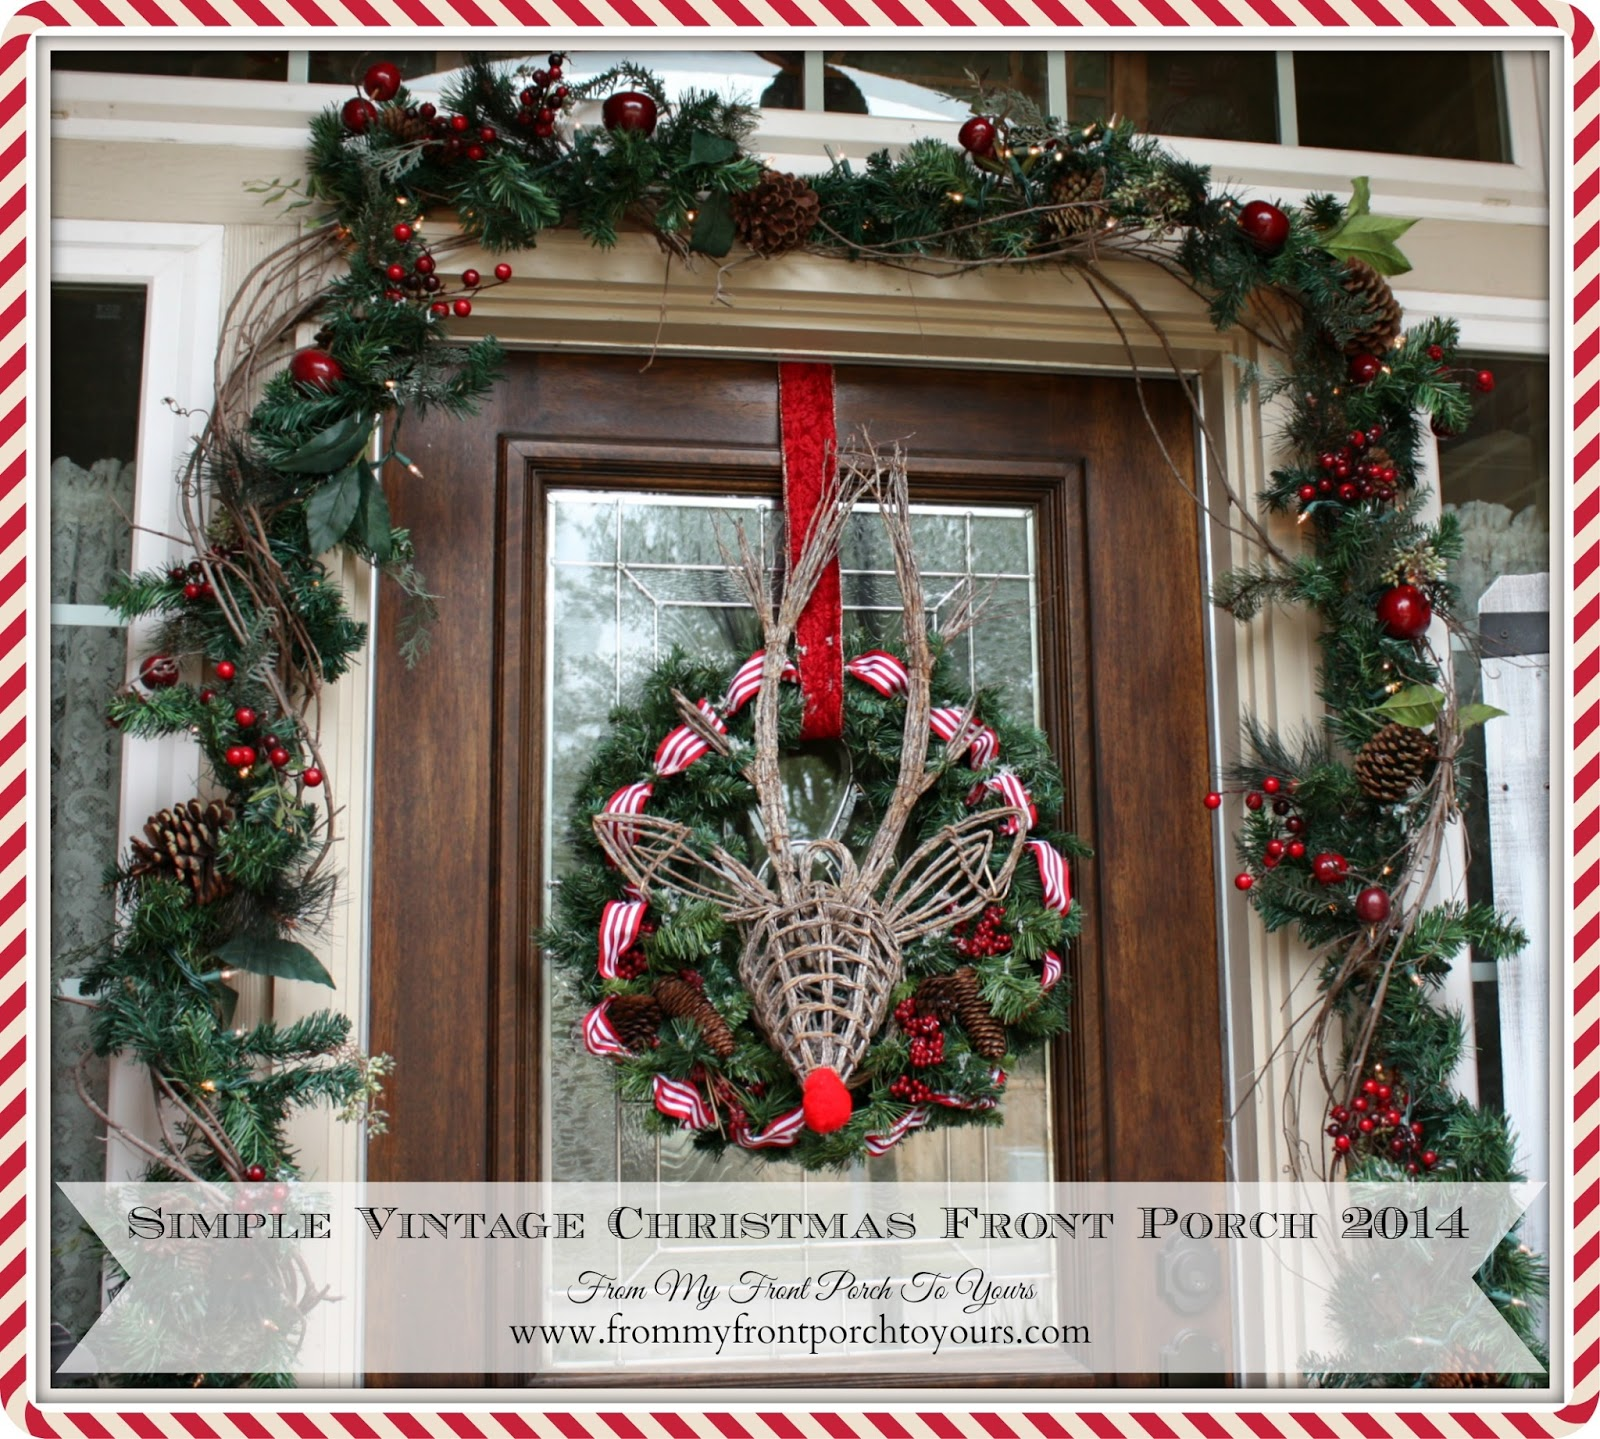 Simple Vintage Christmas Front Porch- From My Front Porch To Yours